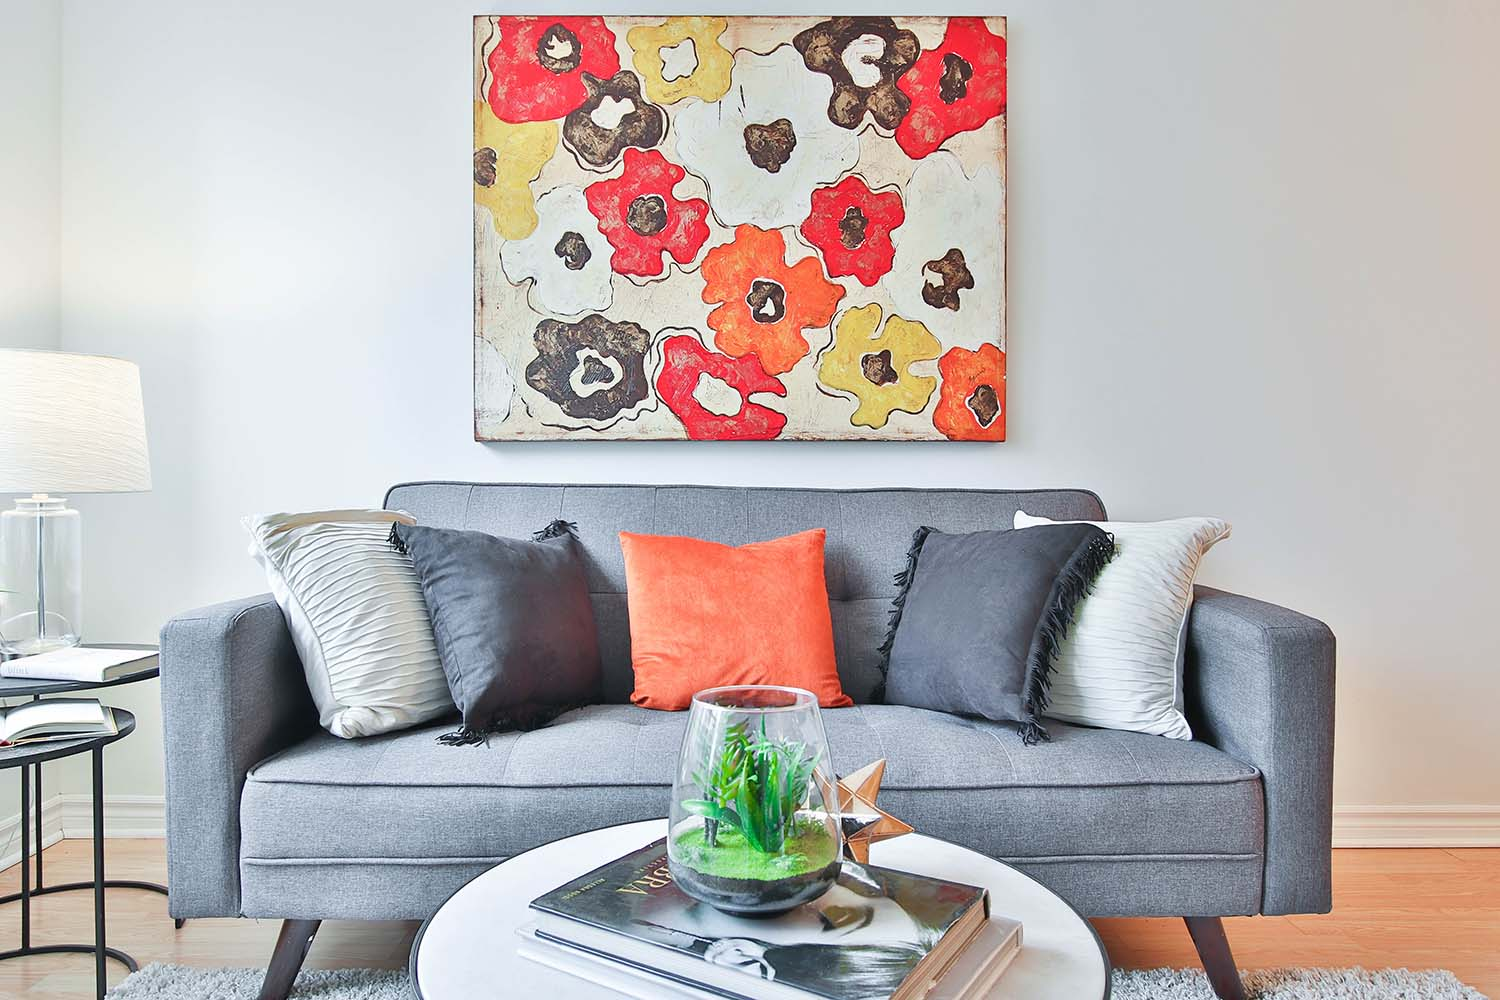 Interior Design Colour Schemes: Finding the Perfect Look for Your Home